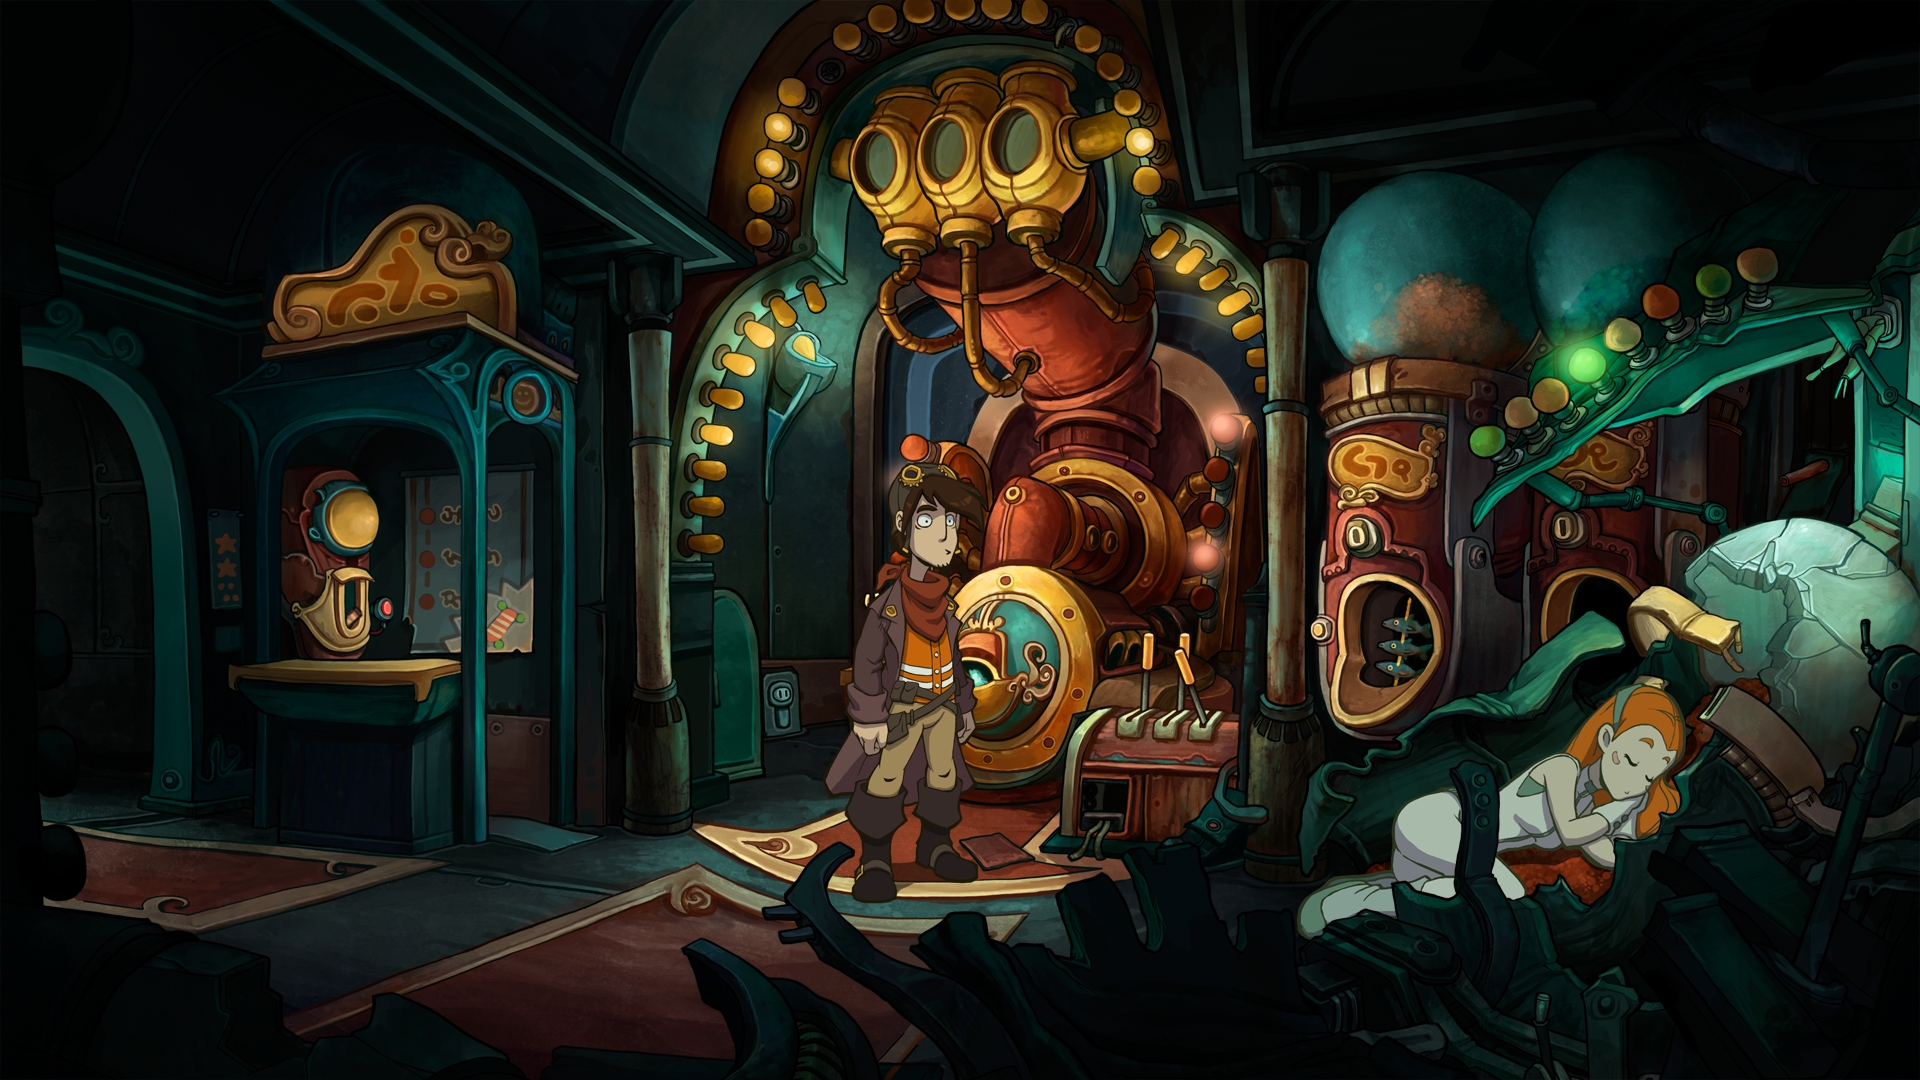 deponia le point click qui fait rigoler game side story. Black Bedroom Furniture Sets. Home Design Ideas